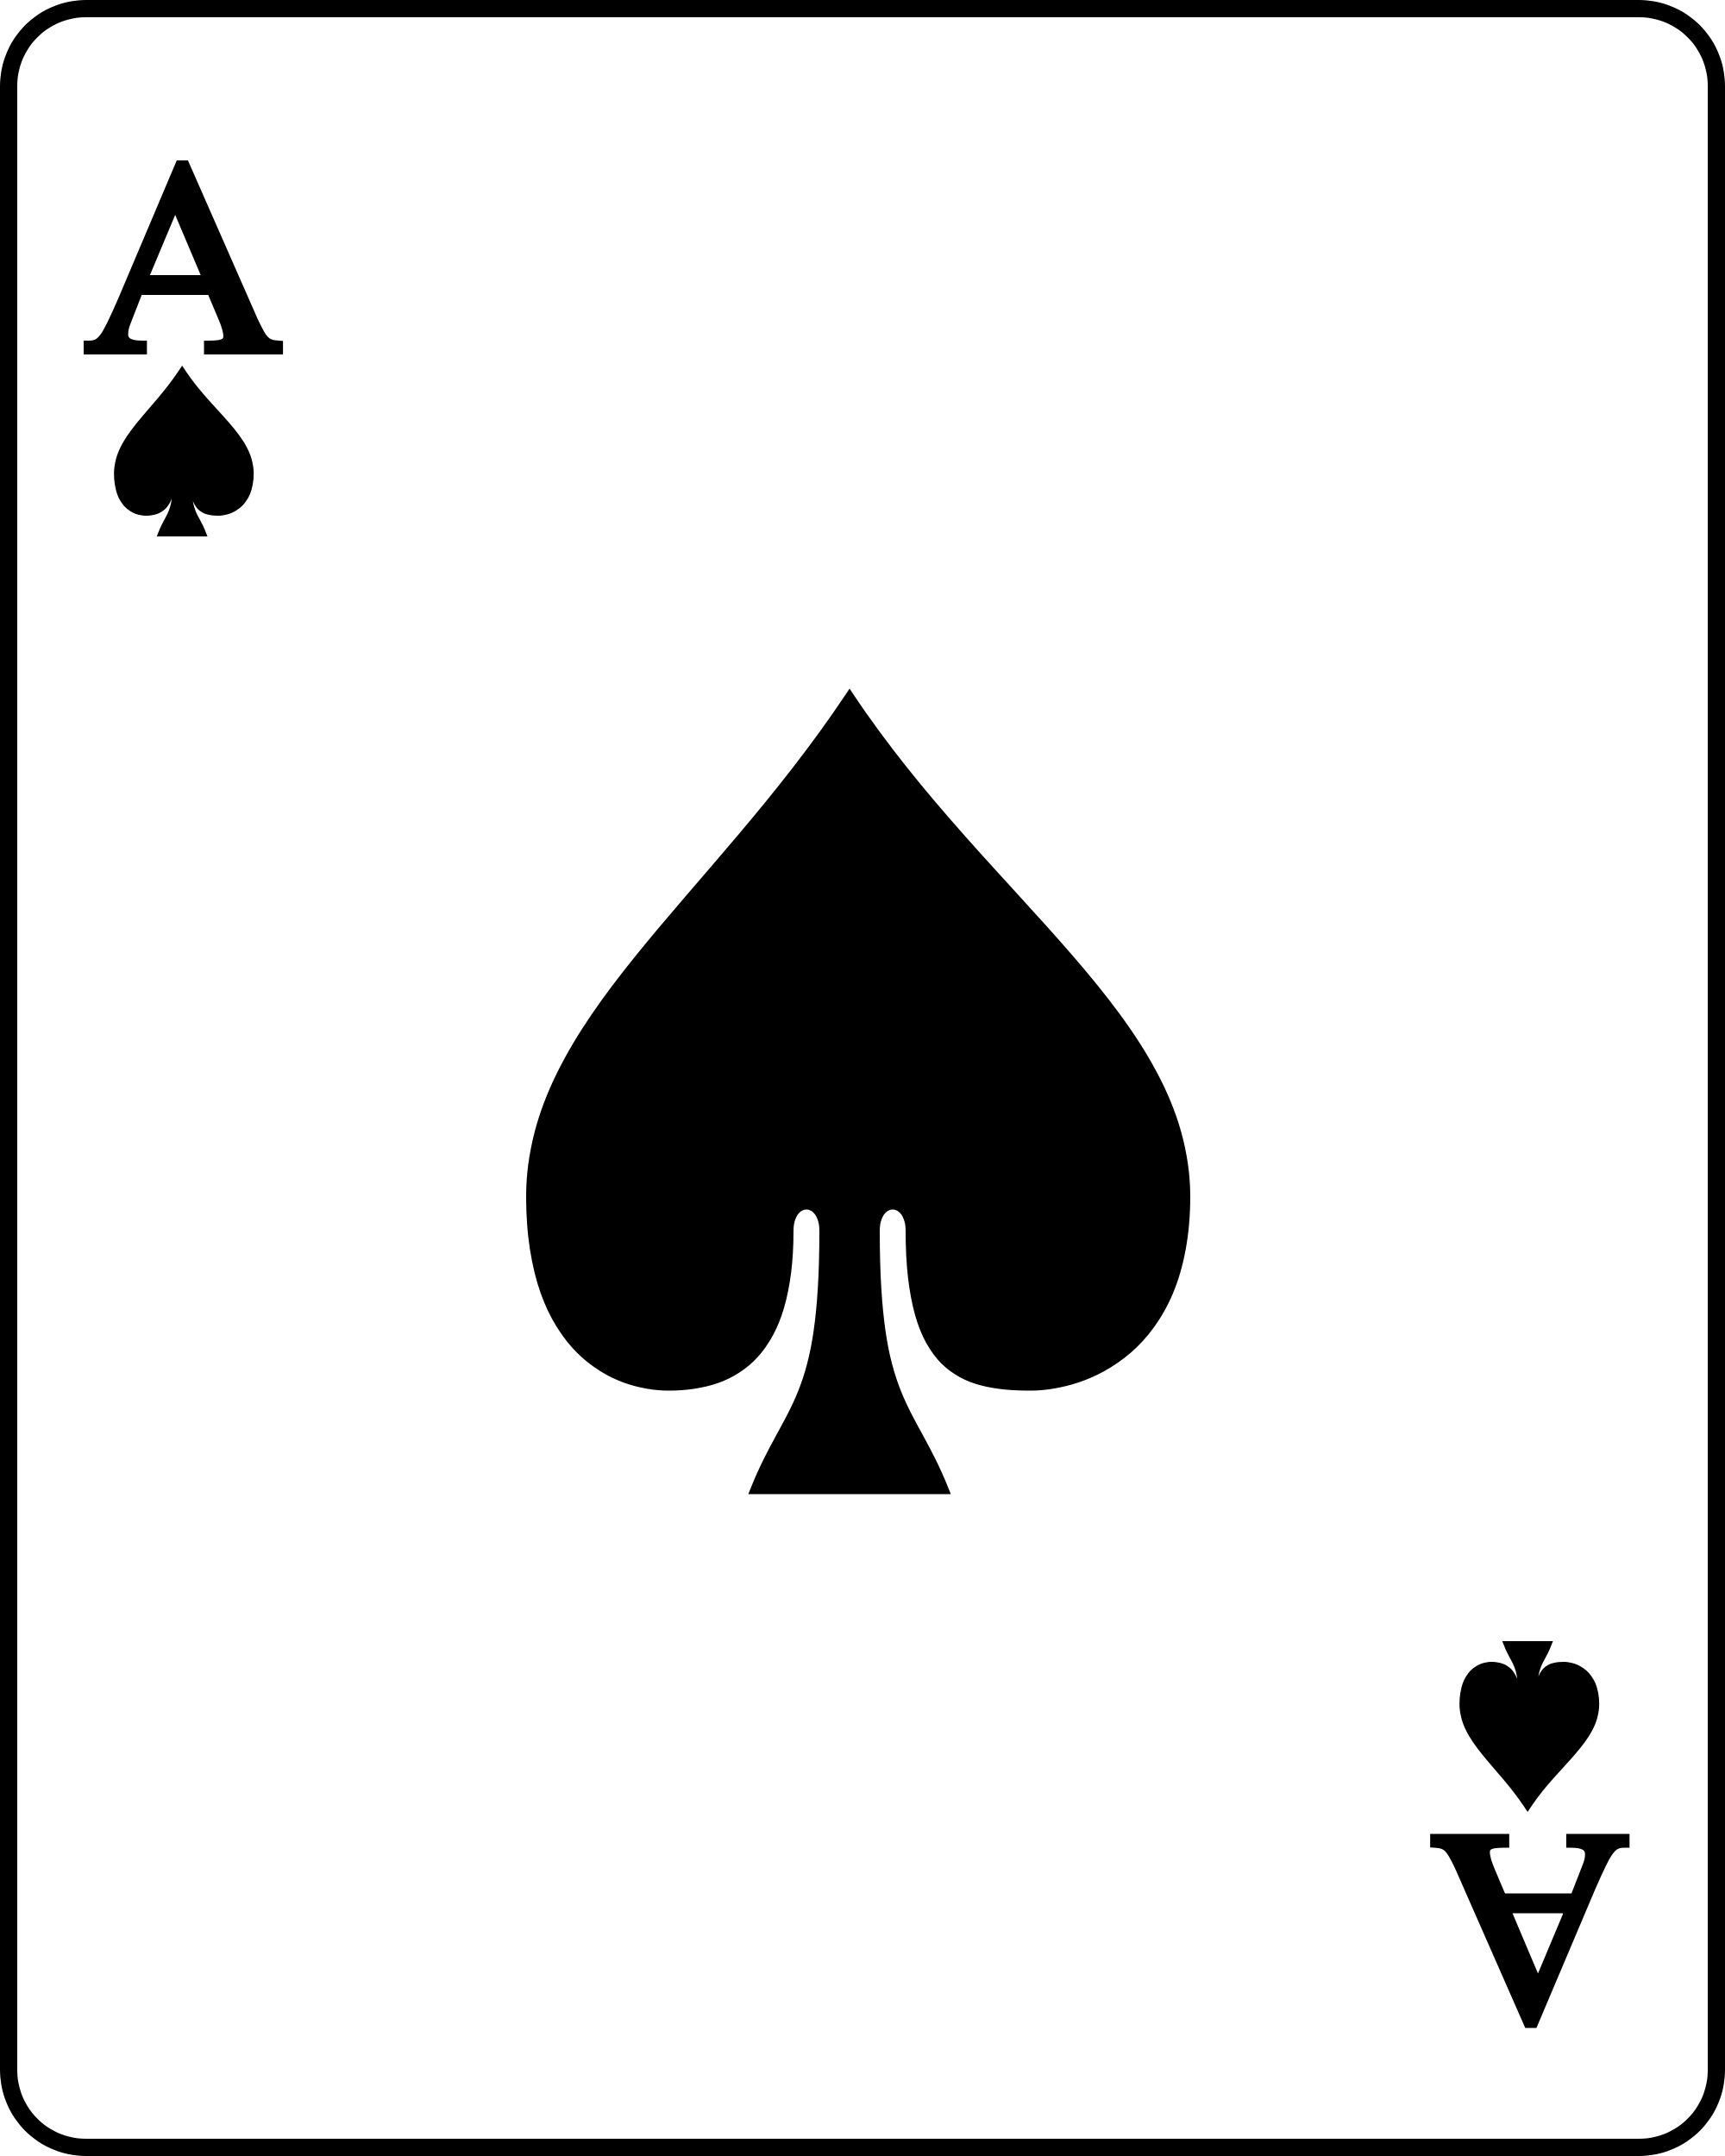 File:Playing Card Spade A.svg.